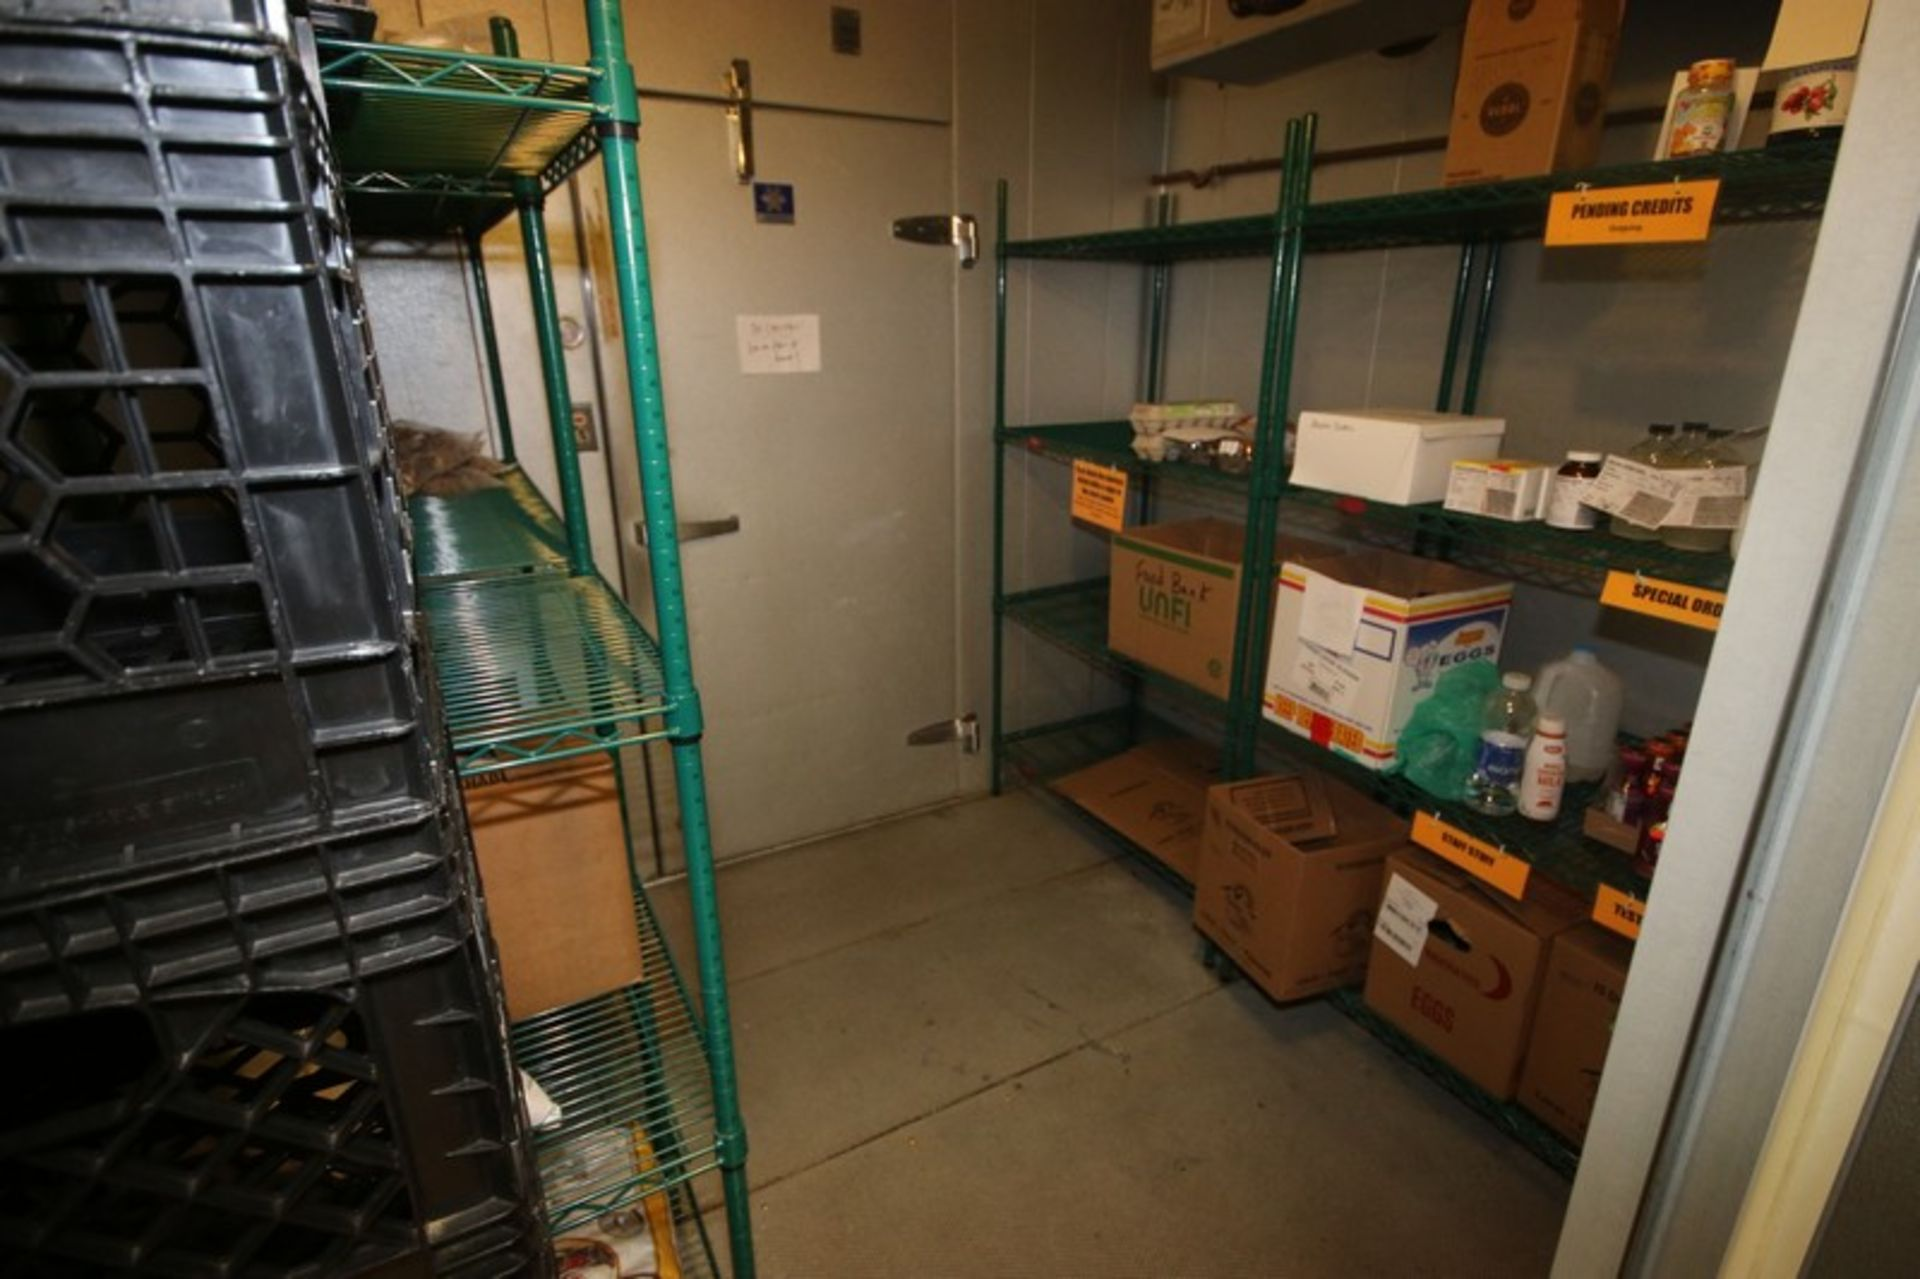 Harford Dual Compartment Walk-In Cooler & Freezer, M/N DR36788W5H8D, S/N XW703D9, Compartment Sizes: - Image 6 of 16